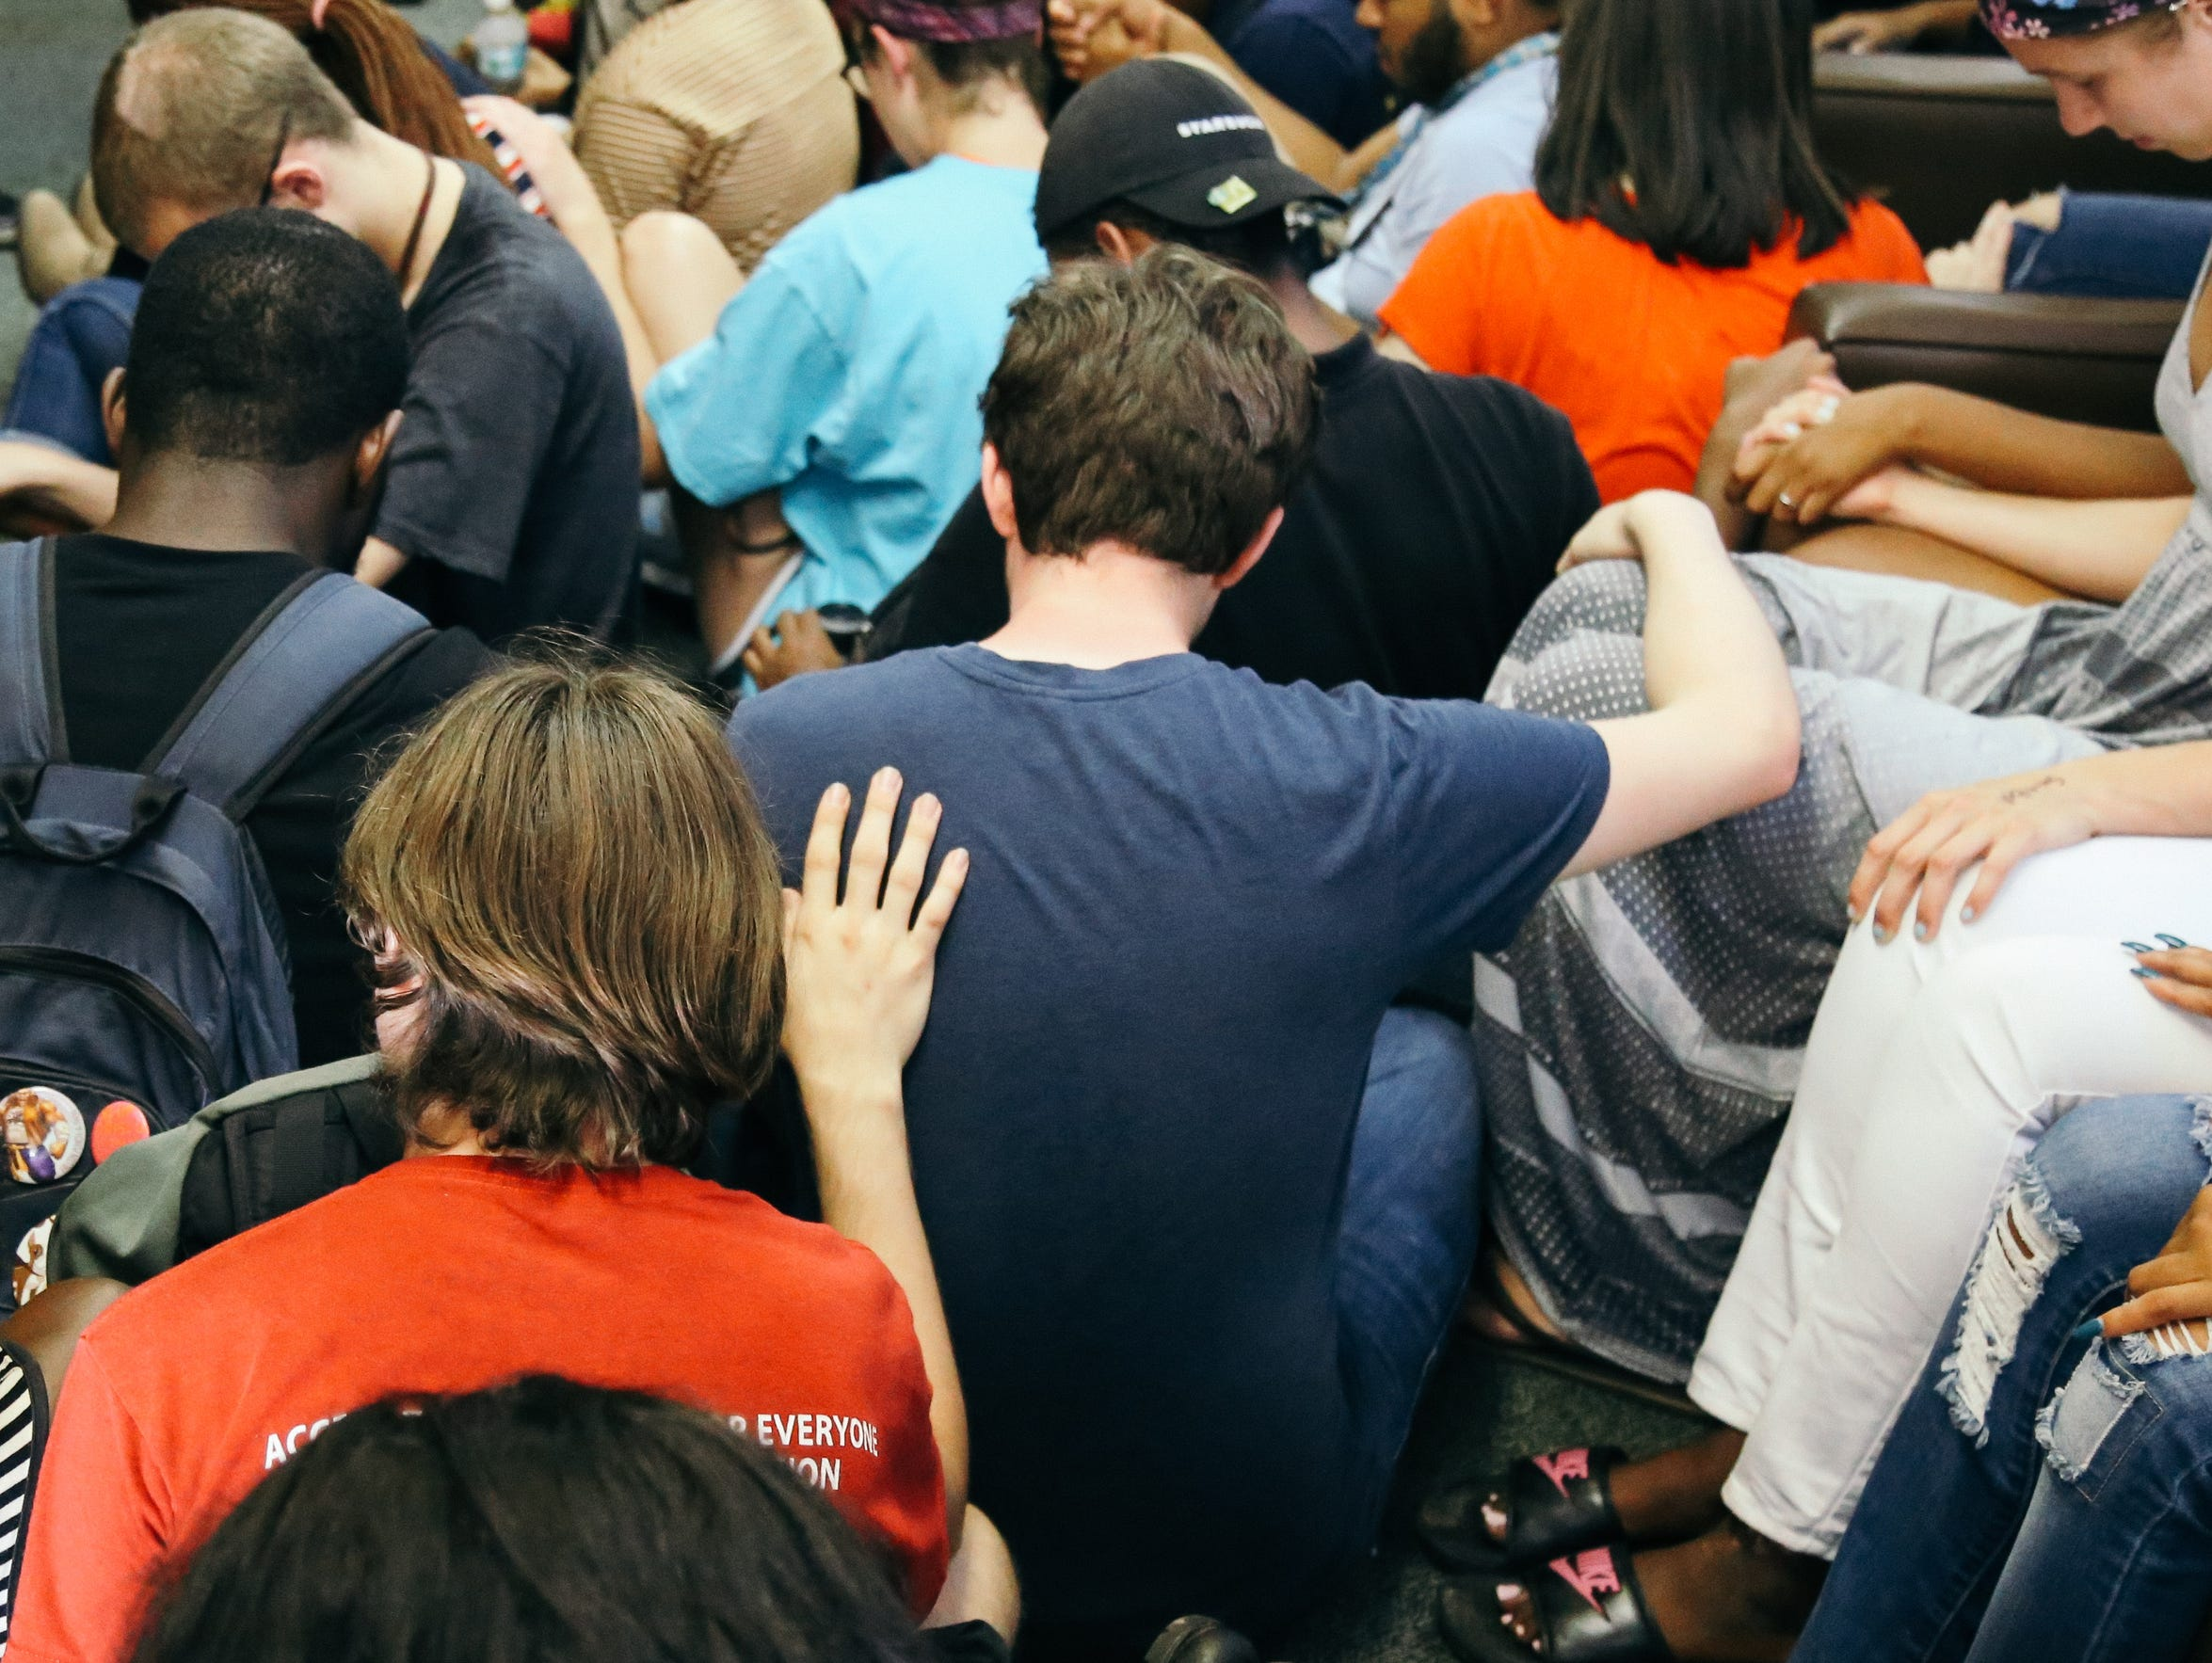 Students talked, cried and prayed together in the BSU